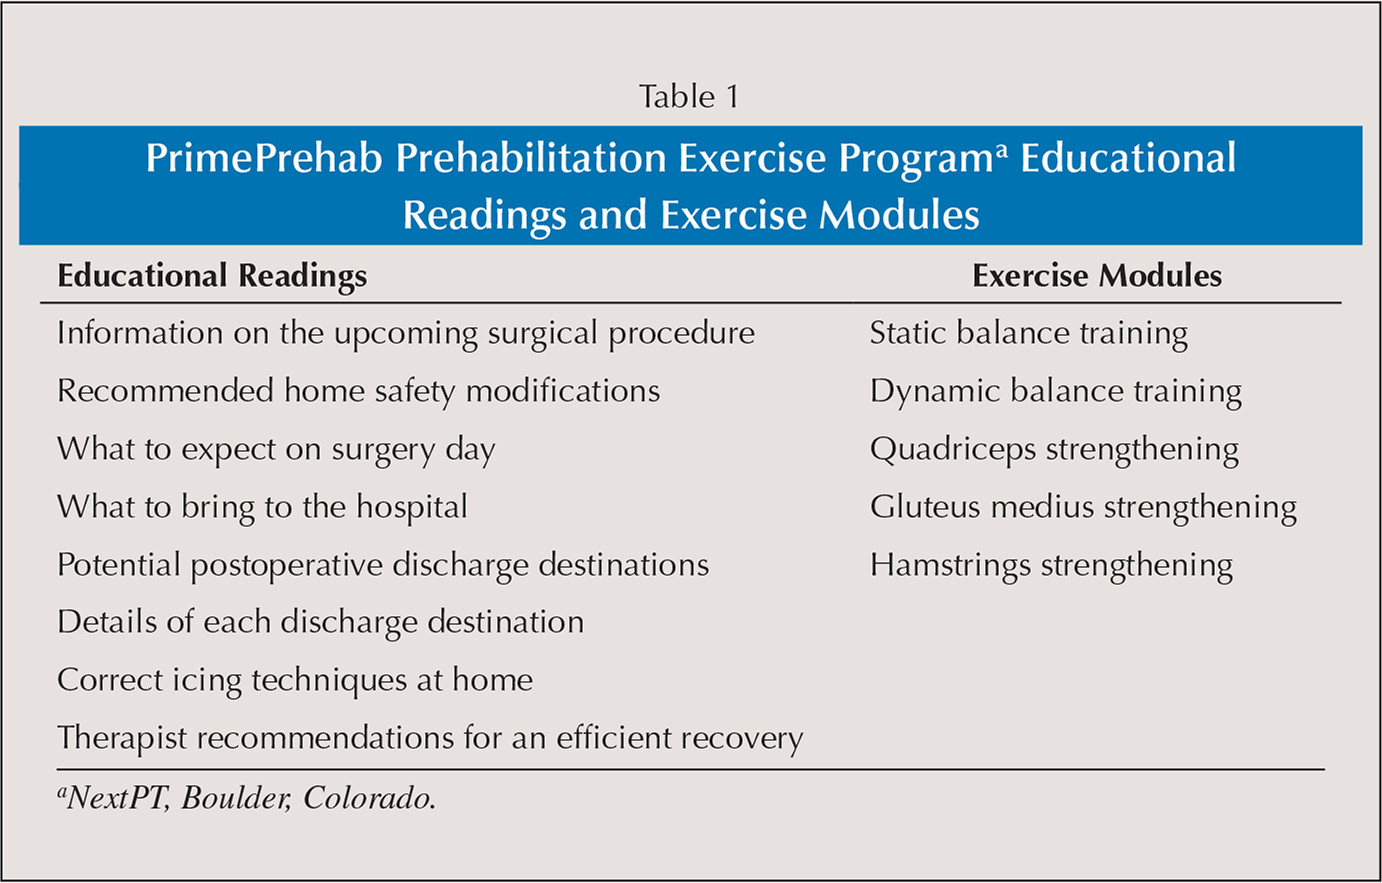 PrimePrehab Prehabilitation Exercise Programa Educational Readings and Exercise Modules